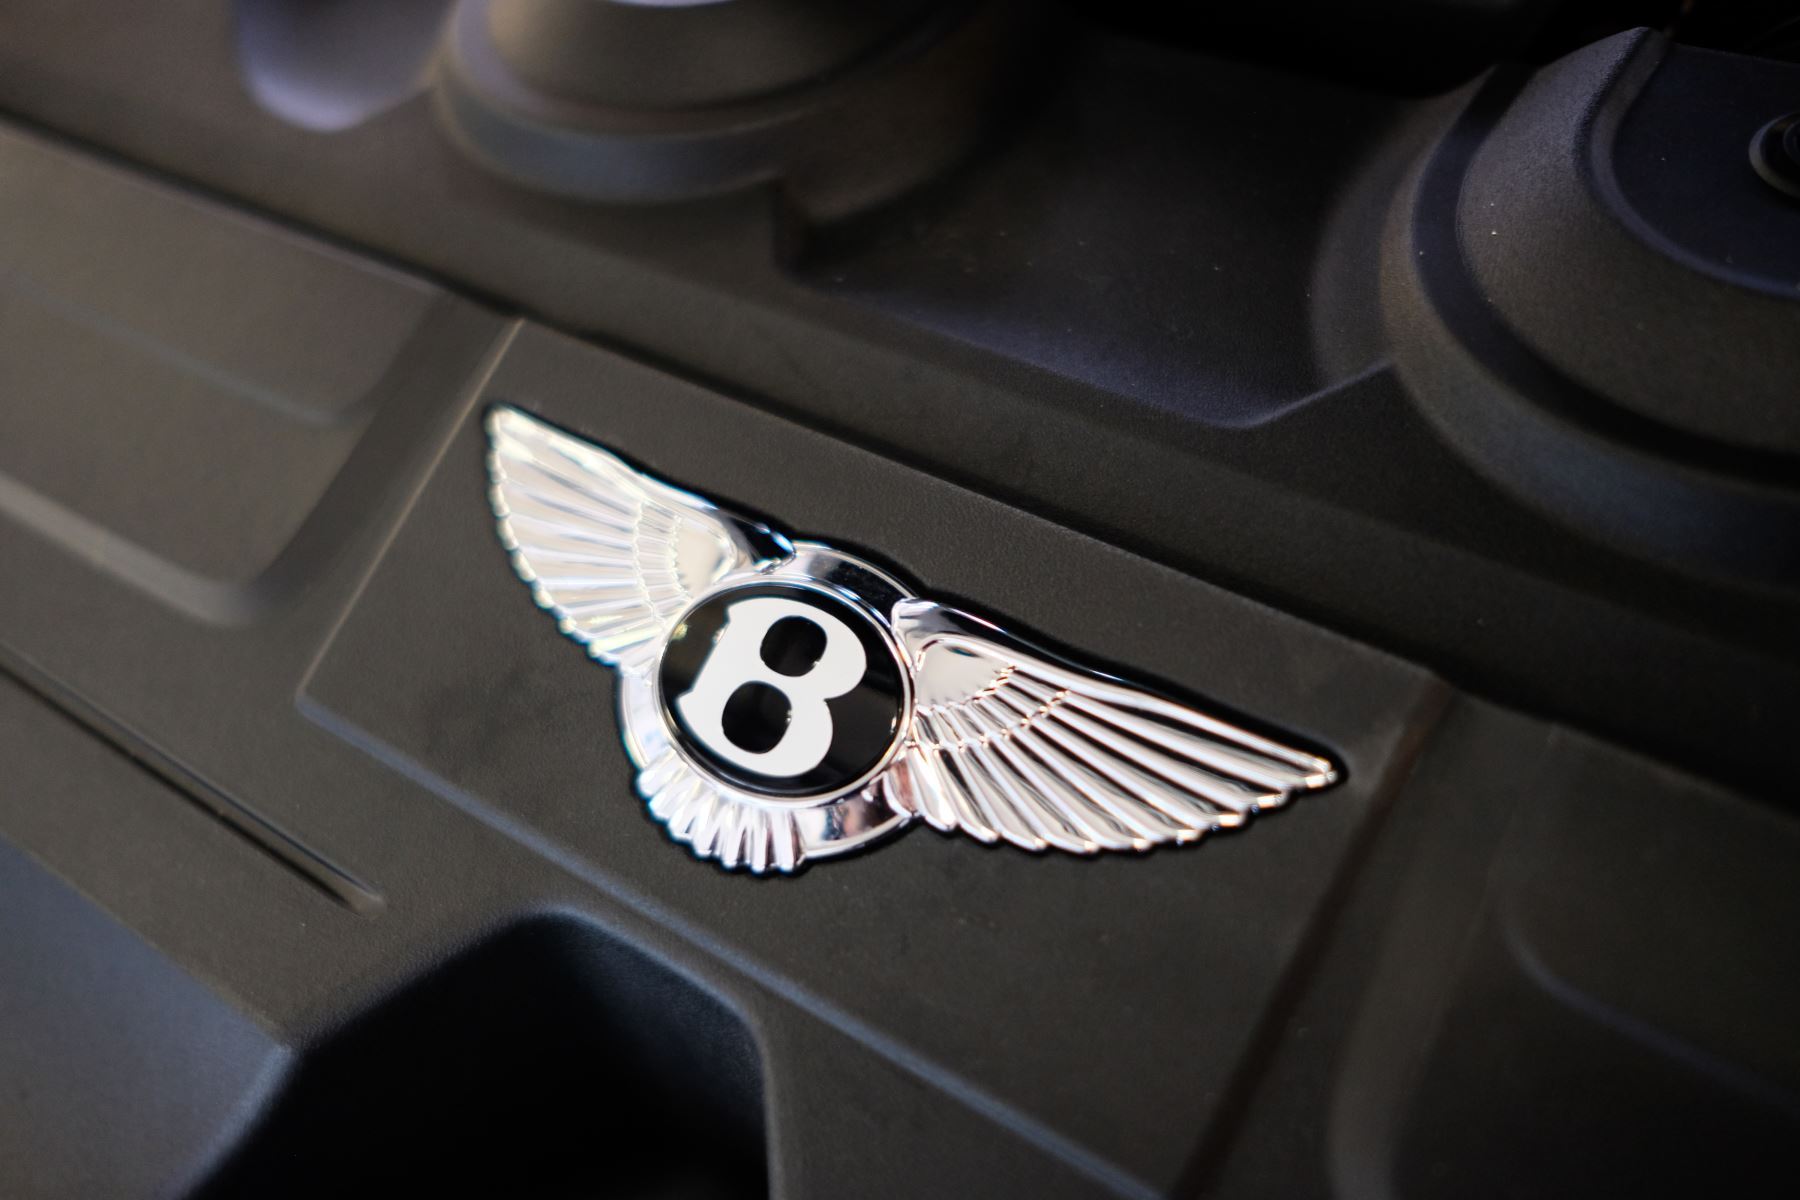 Bentley Continental GT 4.0 V8 - Mulliner Driving Specification with Black Painted Wheels - Touring and Centenary Spec image 63